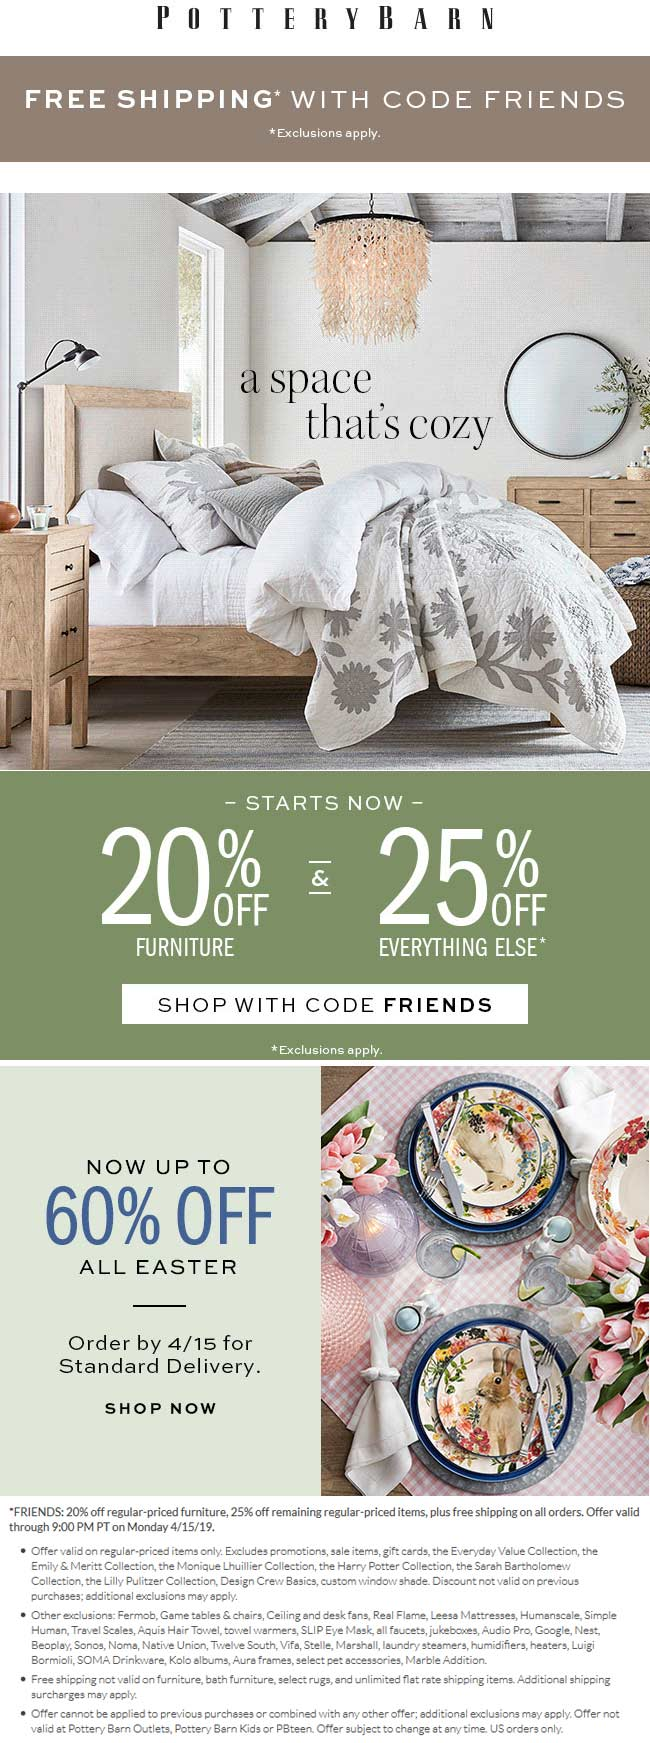 Pottery Barn Coupon January 2020 20-25% off at Pottery Barn, or online via promo code FRIENDS